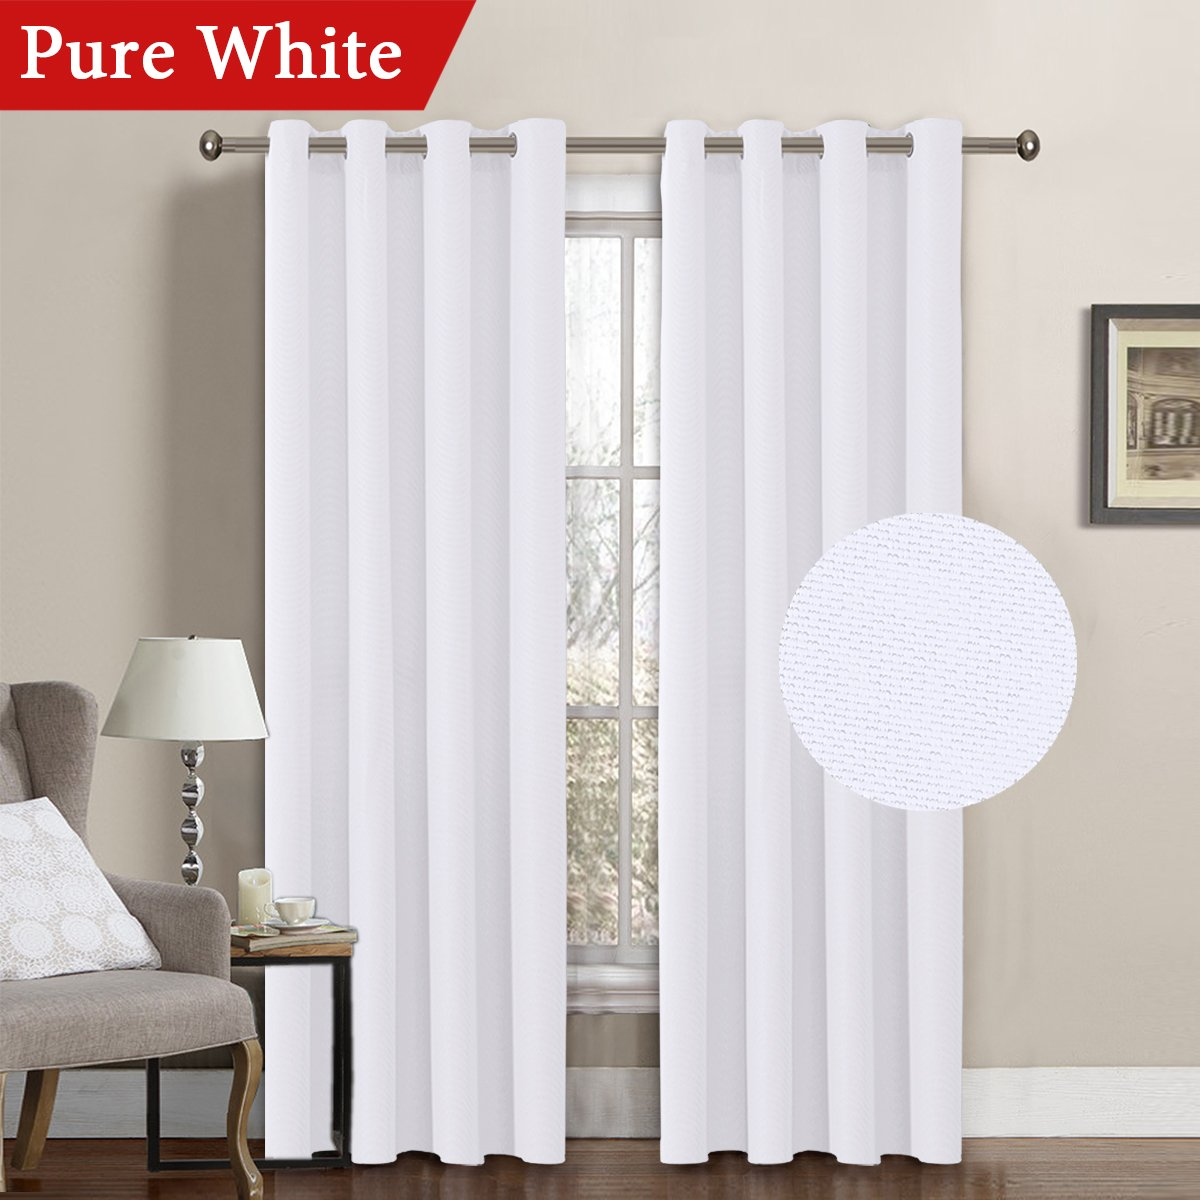 Decorative White Linen Curtain Thermal Insulated Room Darkening Window Treatment